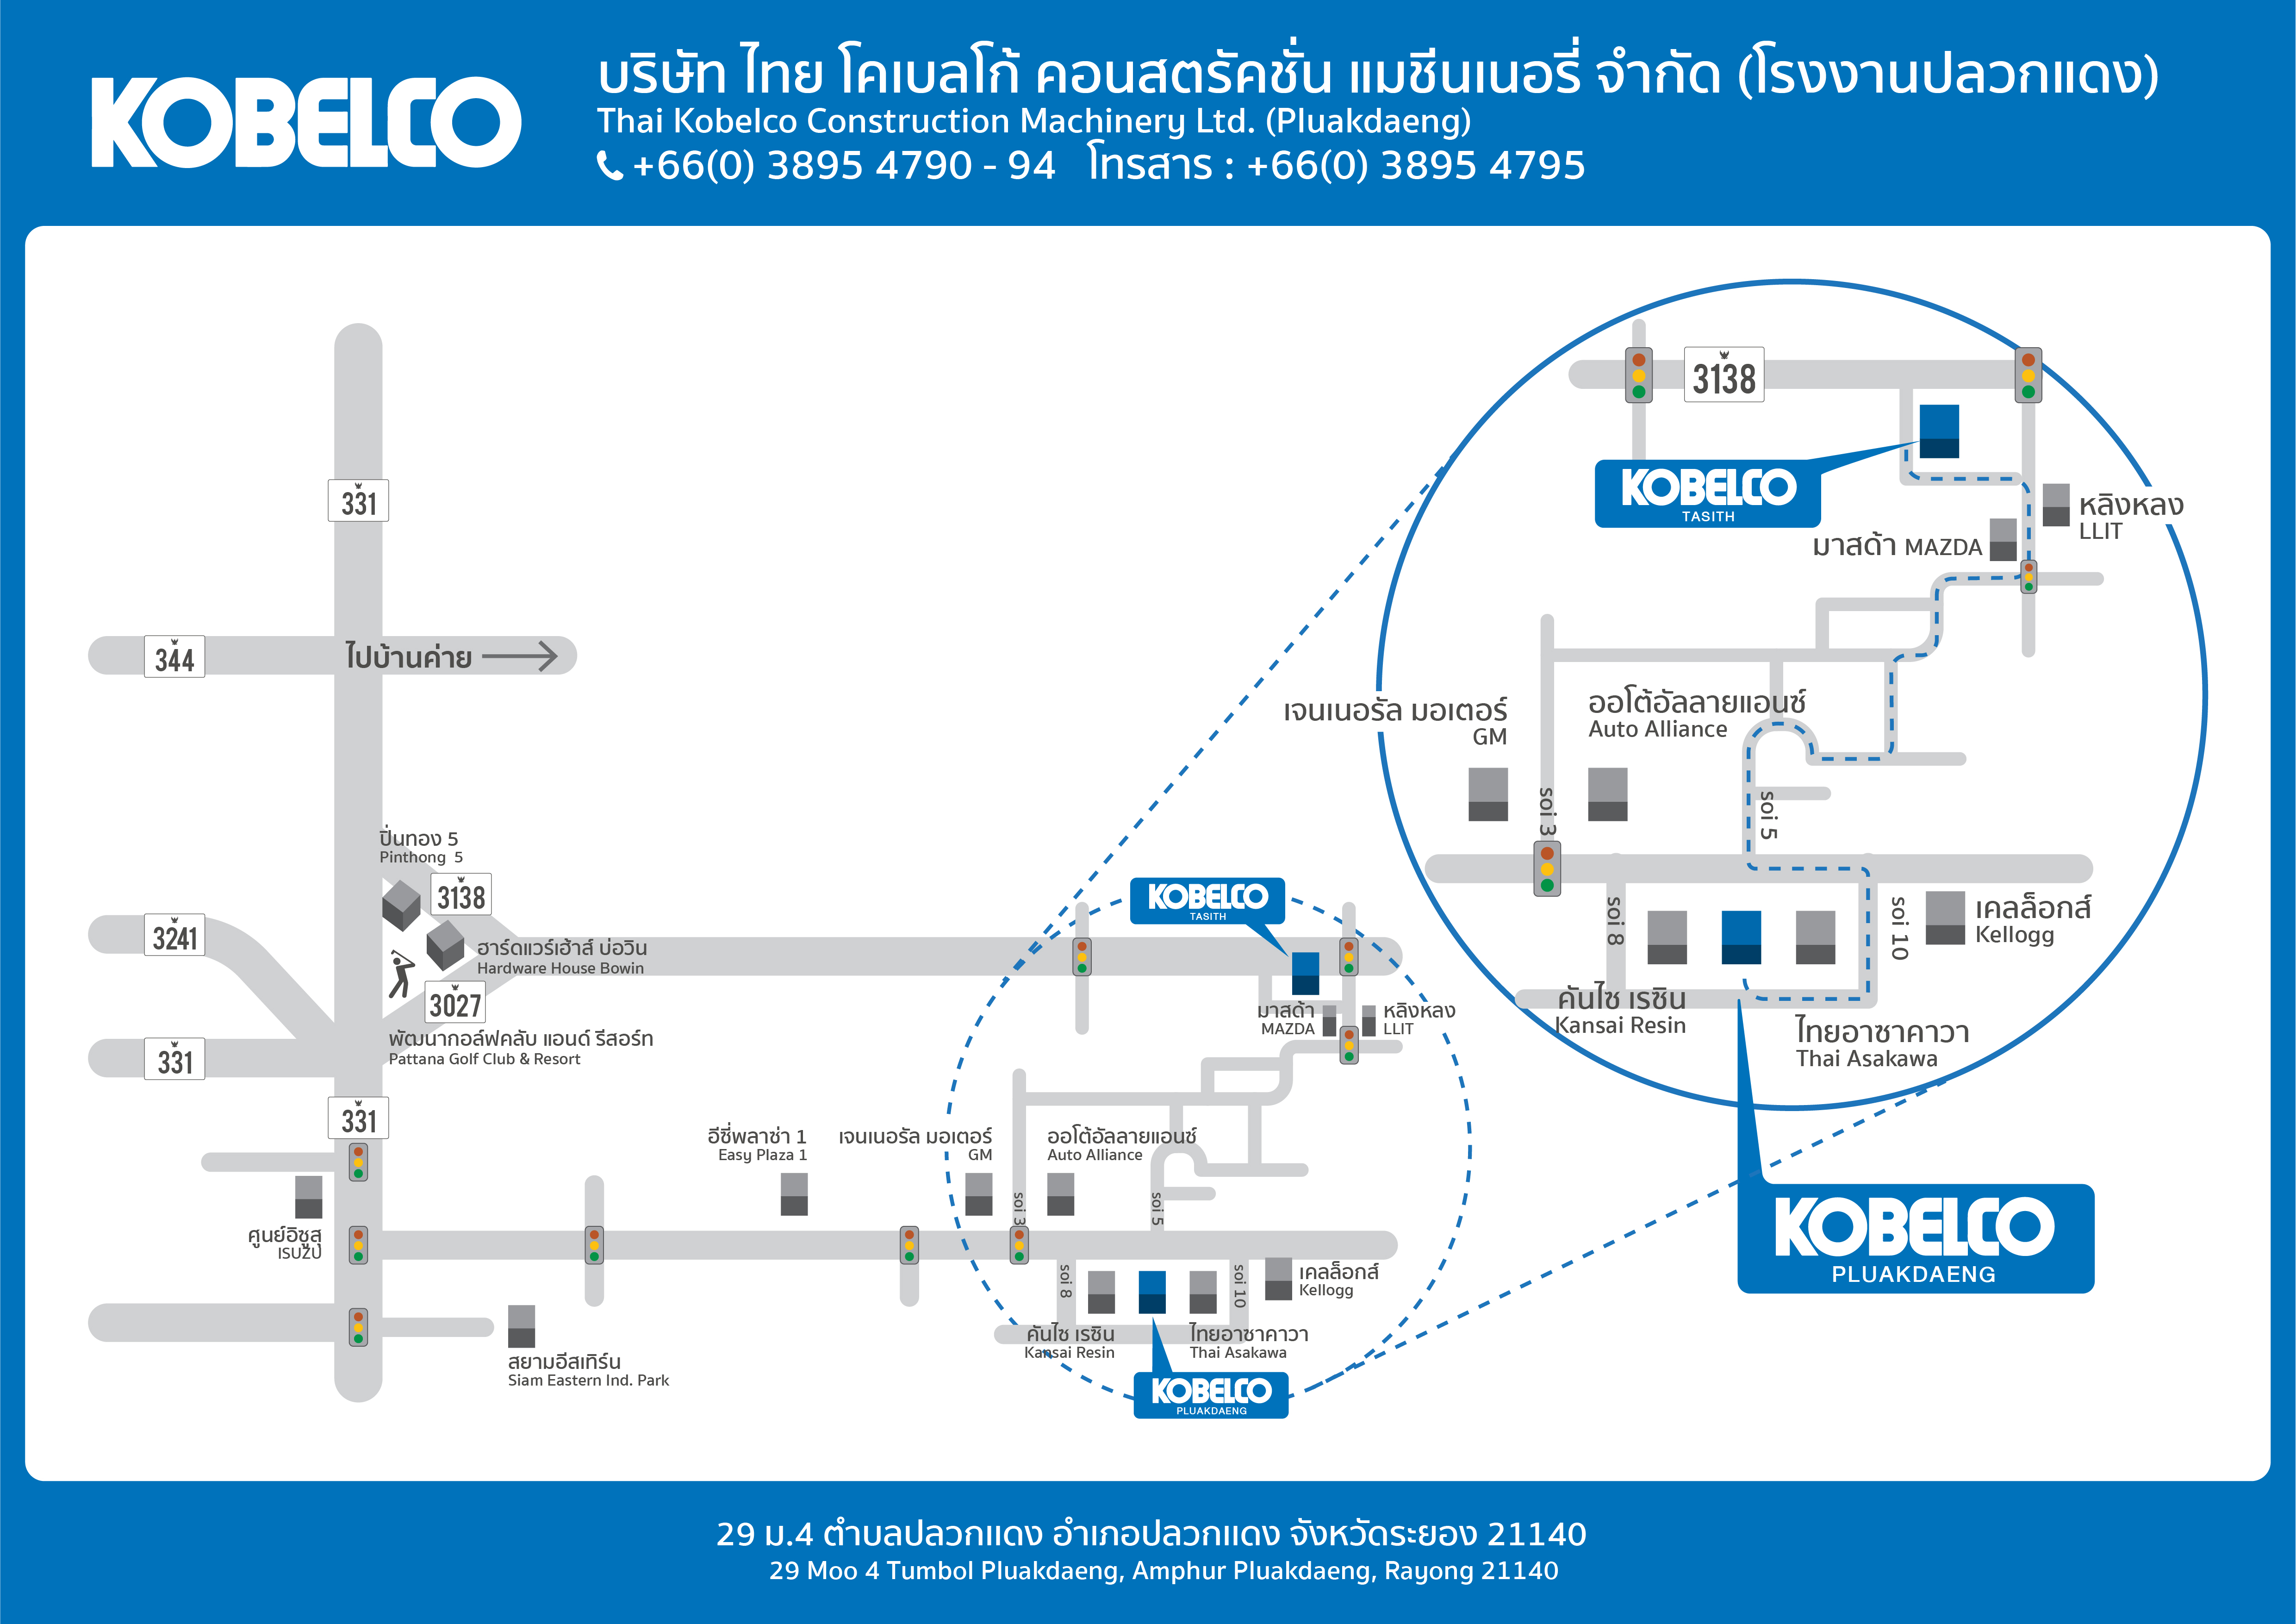 Manufacturing Corporate Information Kobelco Construction Wiring Diagrams Assembling Factory